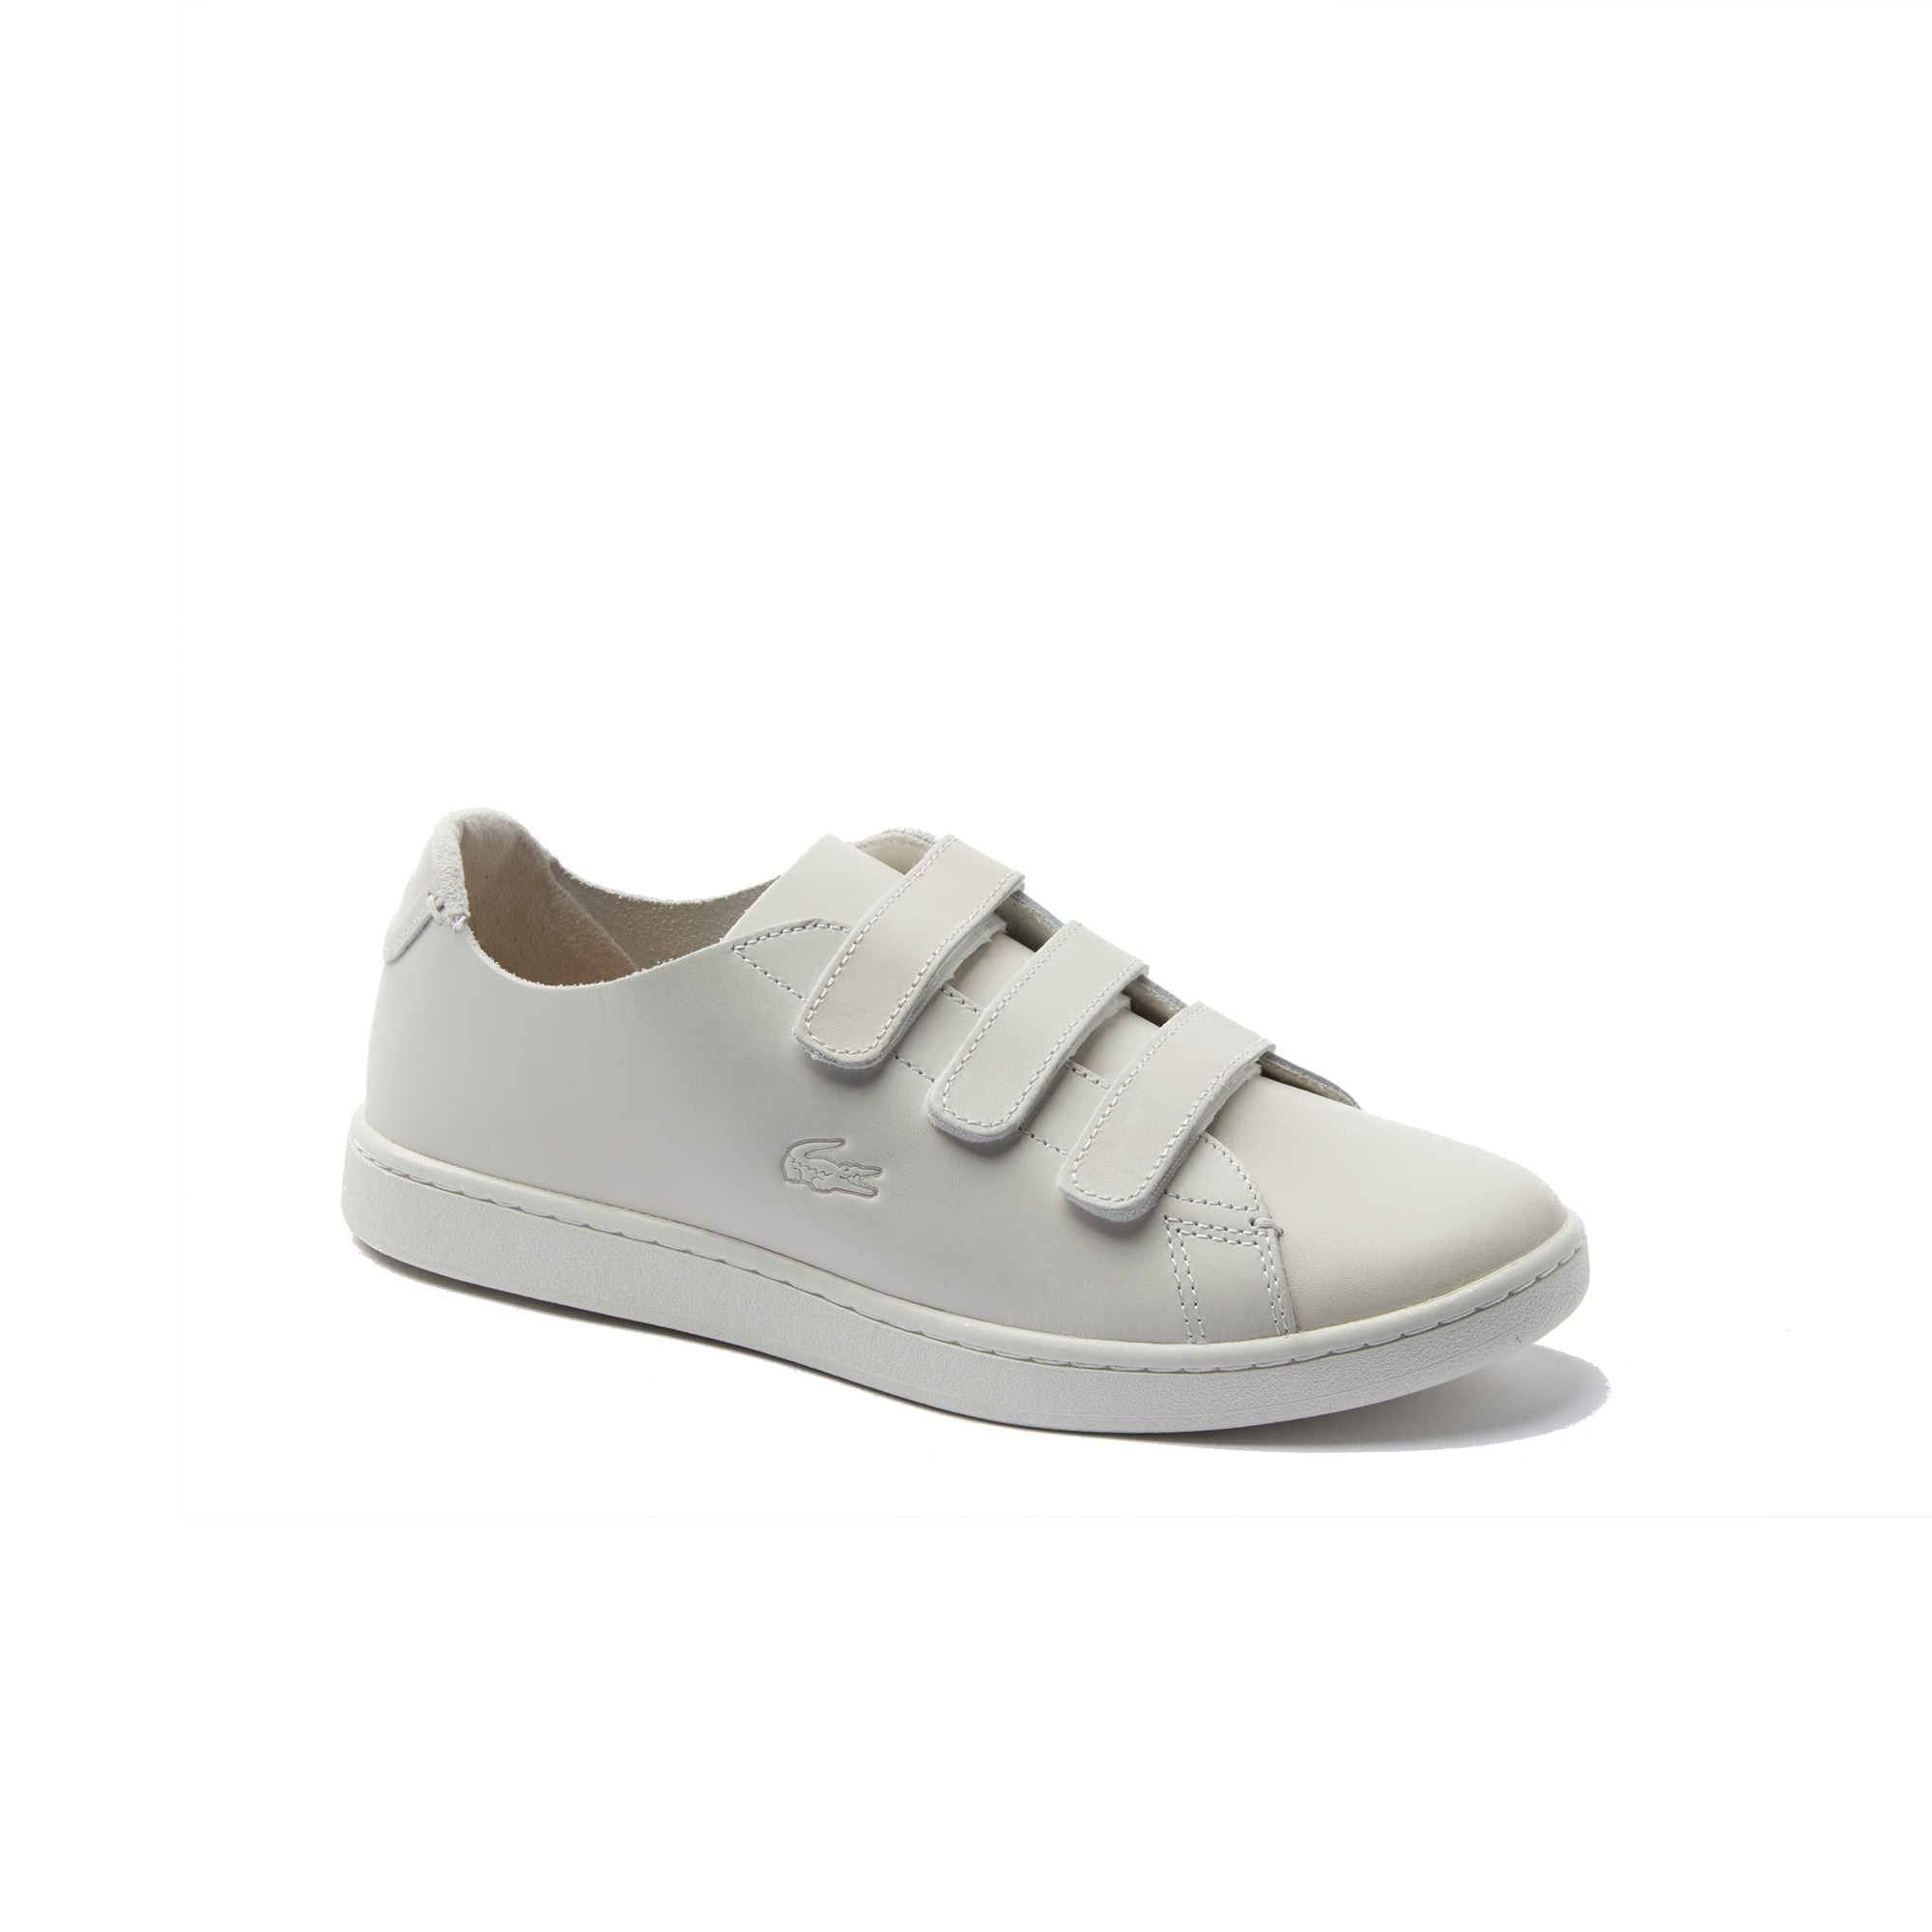 Women's Carnaby Strap Leather Sneakers